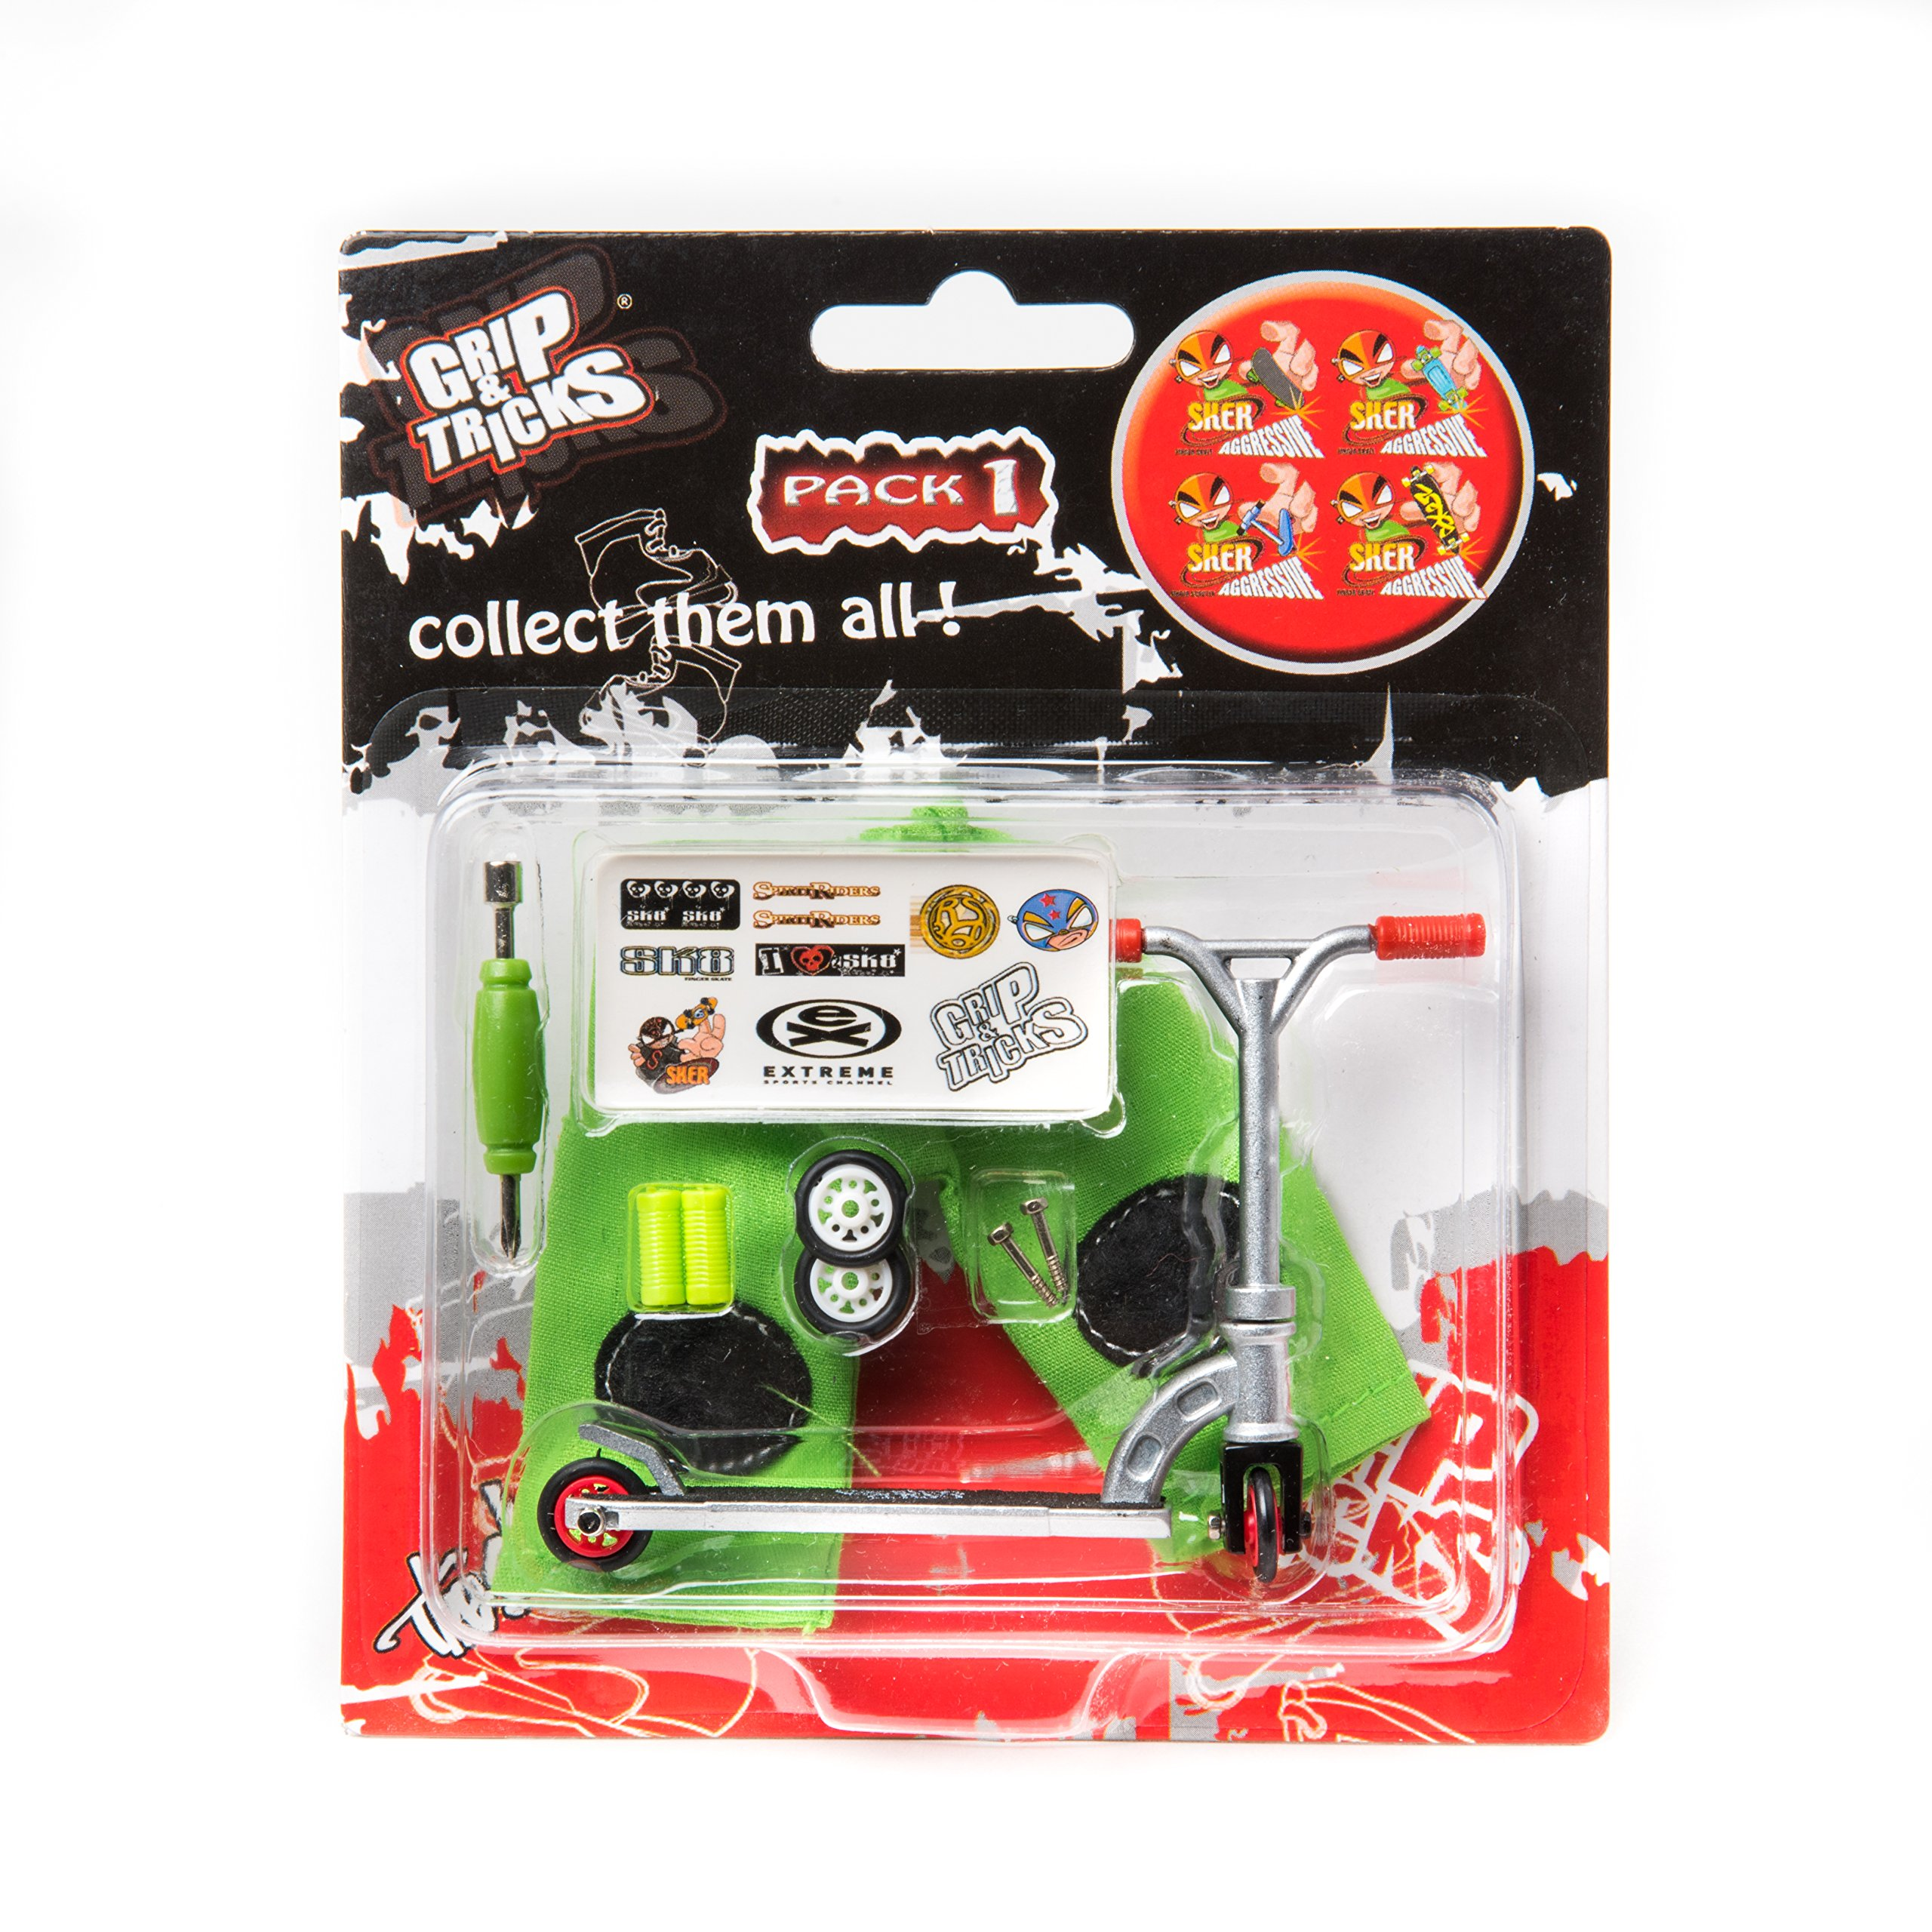 Scooter M7-Grip and Tricks - Finger Scooter - Skate - Pack1 - Silver/Red by Grip&Tricks